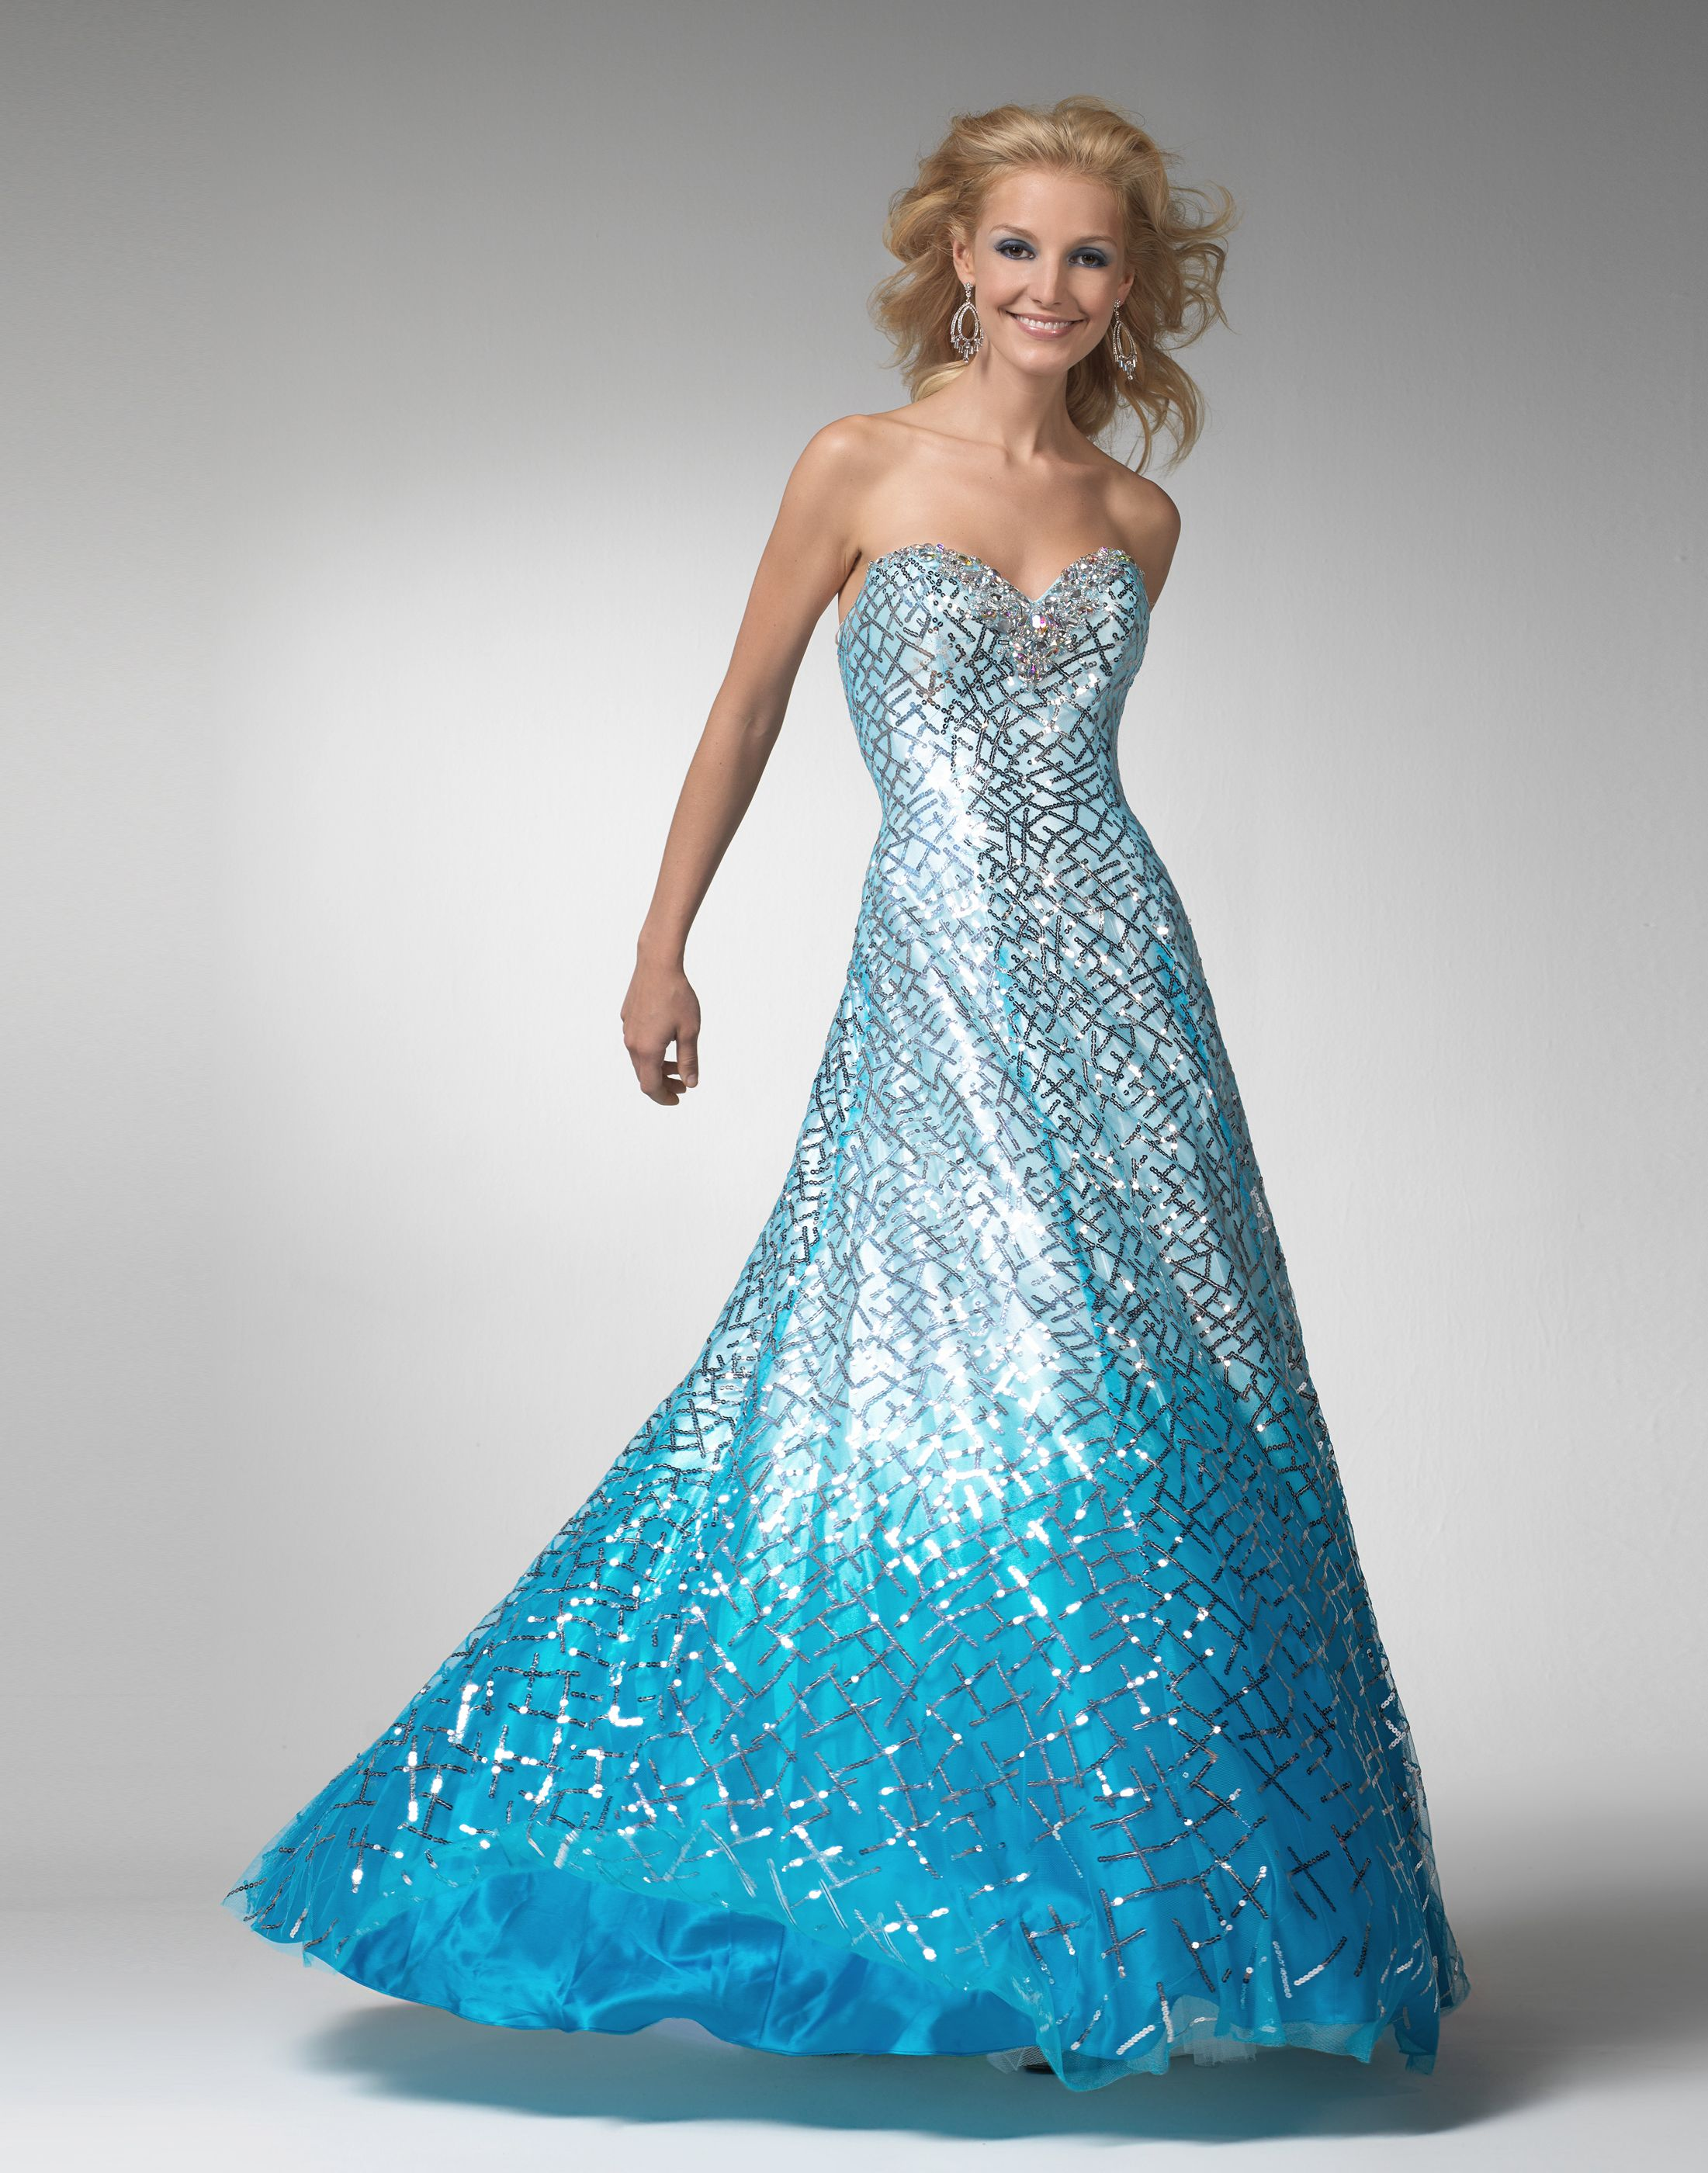 Tips for Wearing a Ball Gown | Promgirl.net | Prom dresses and ...